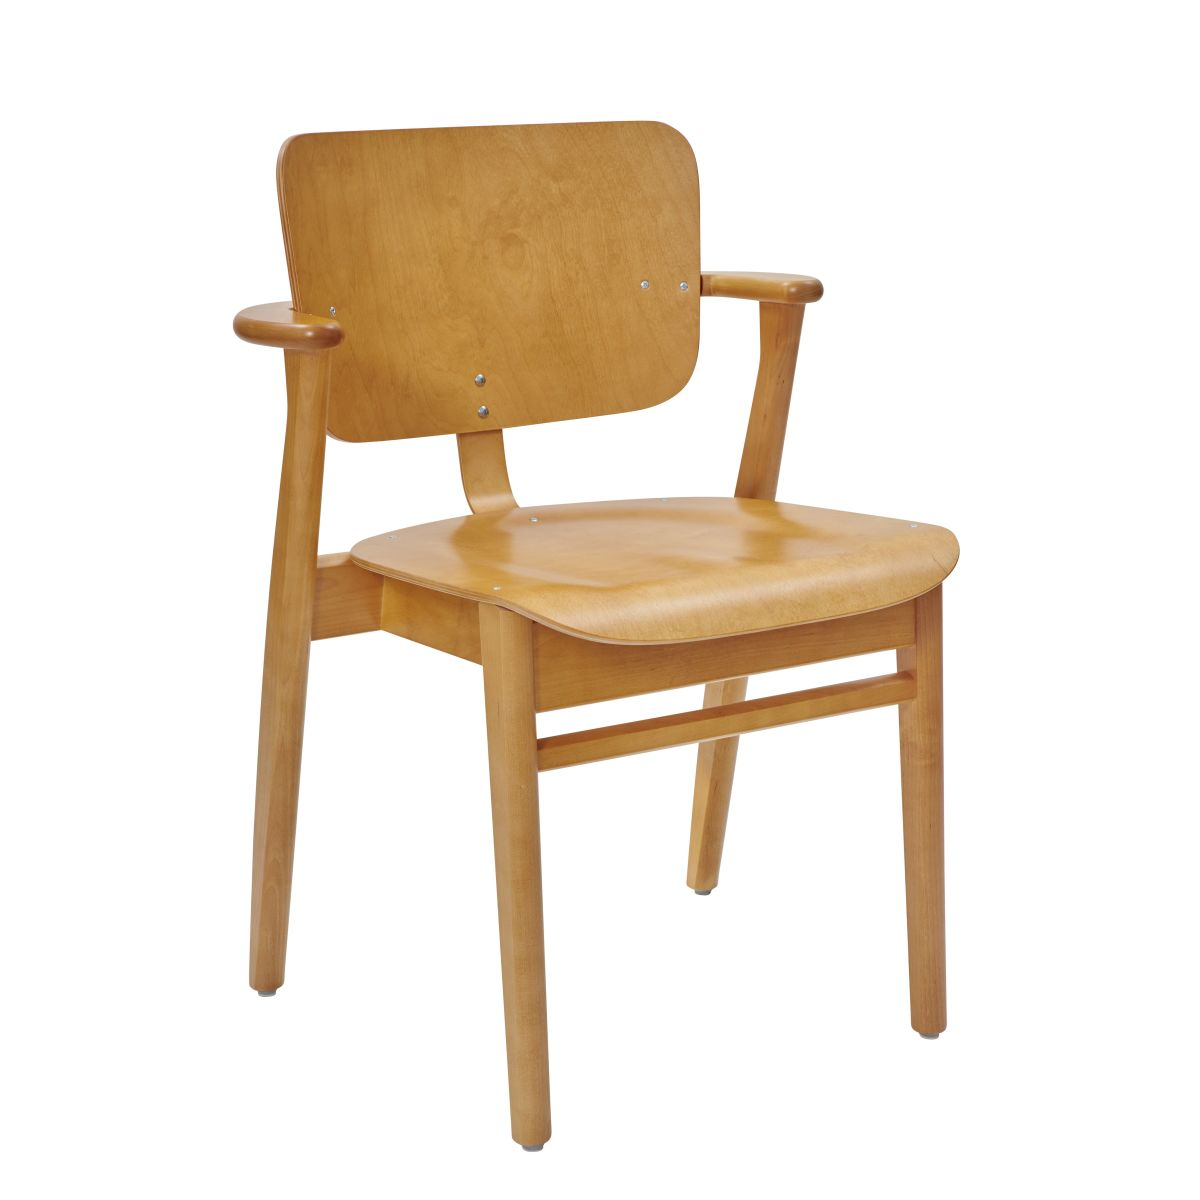 Domus Chair honey stained birch